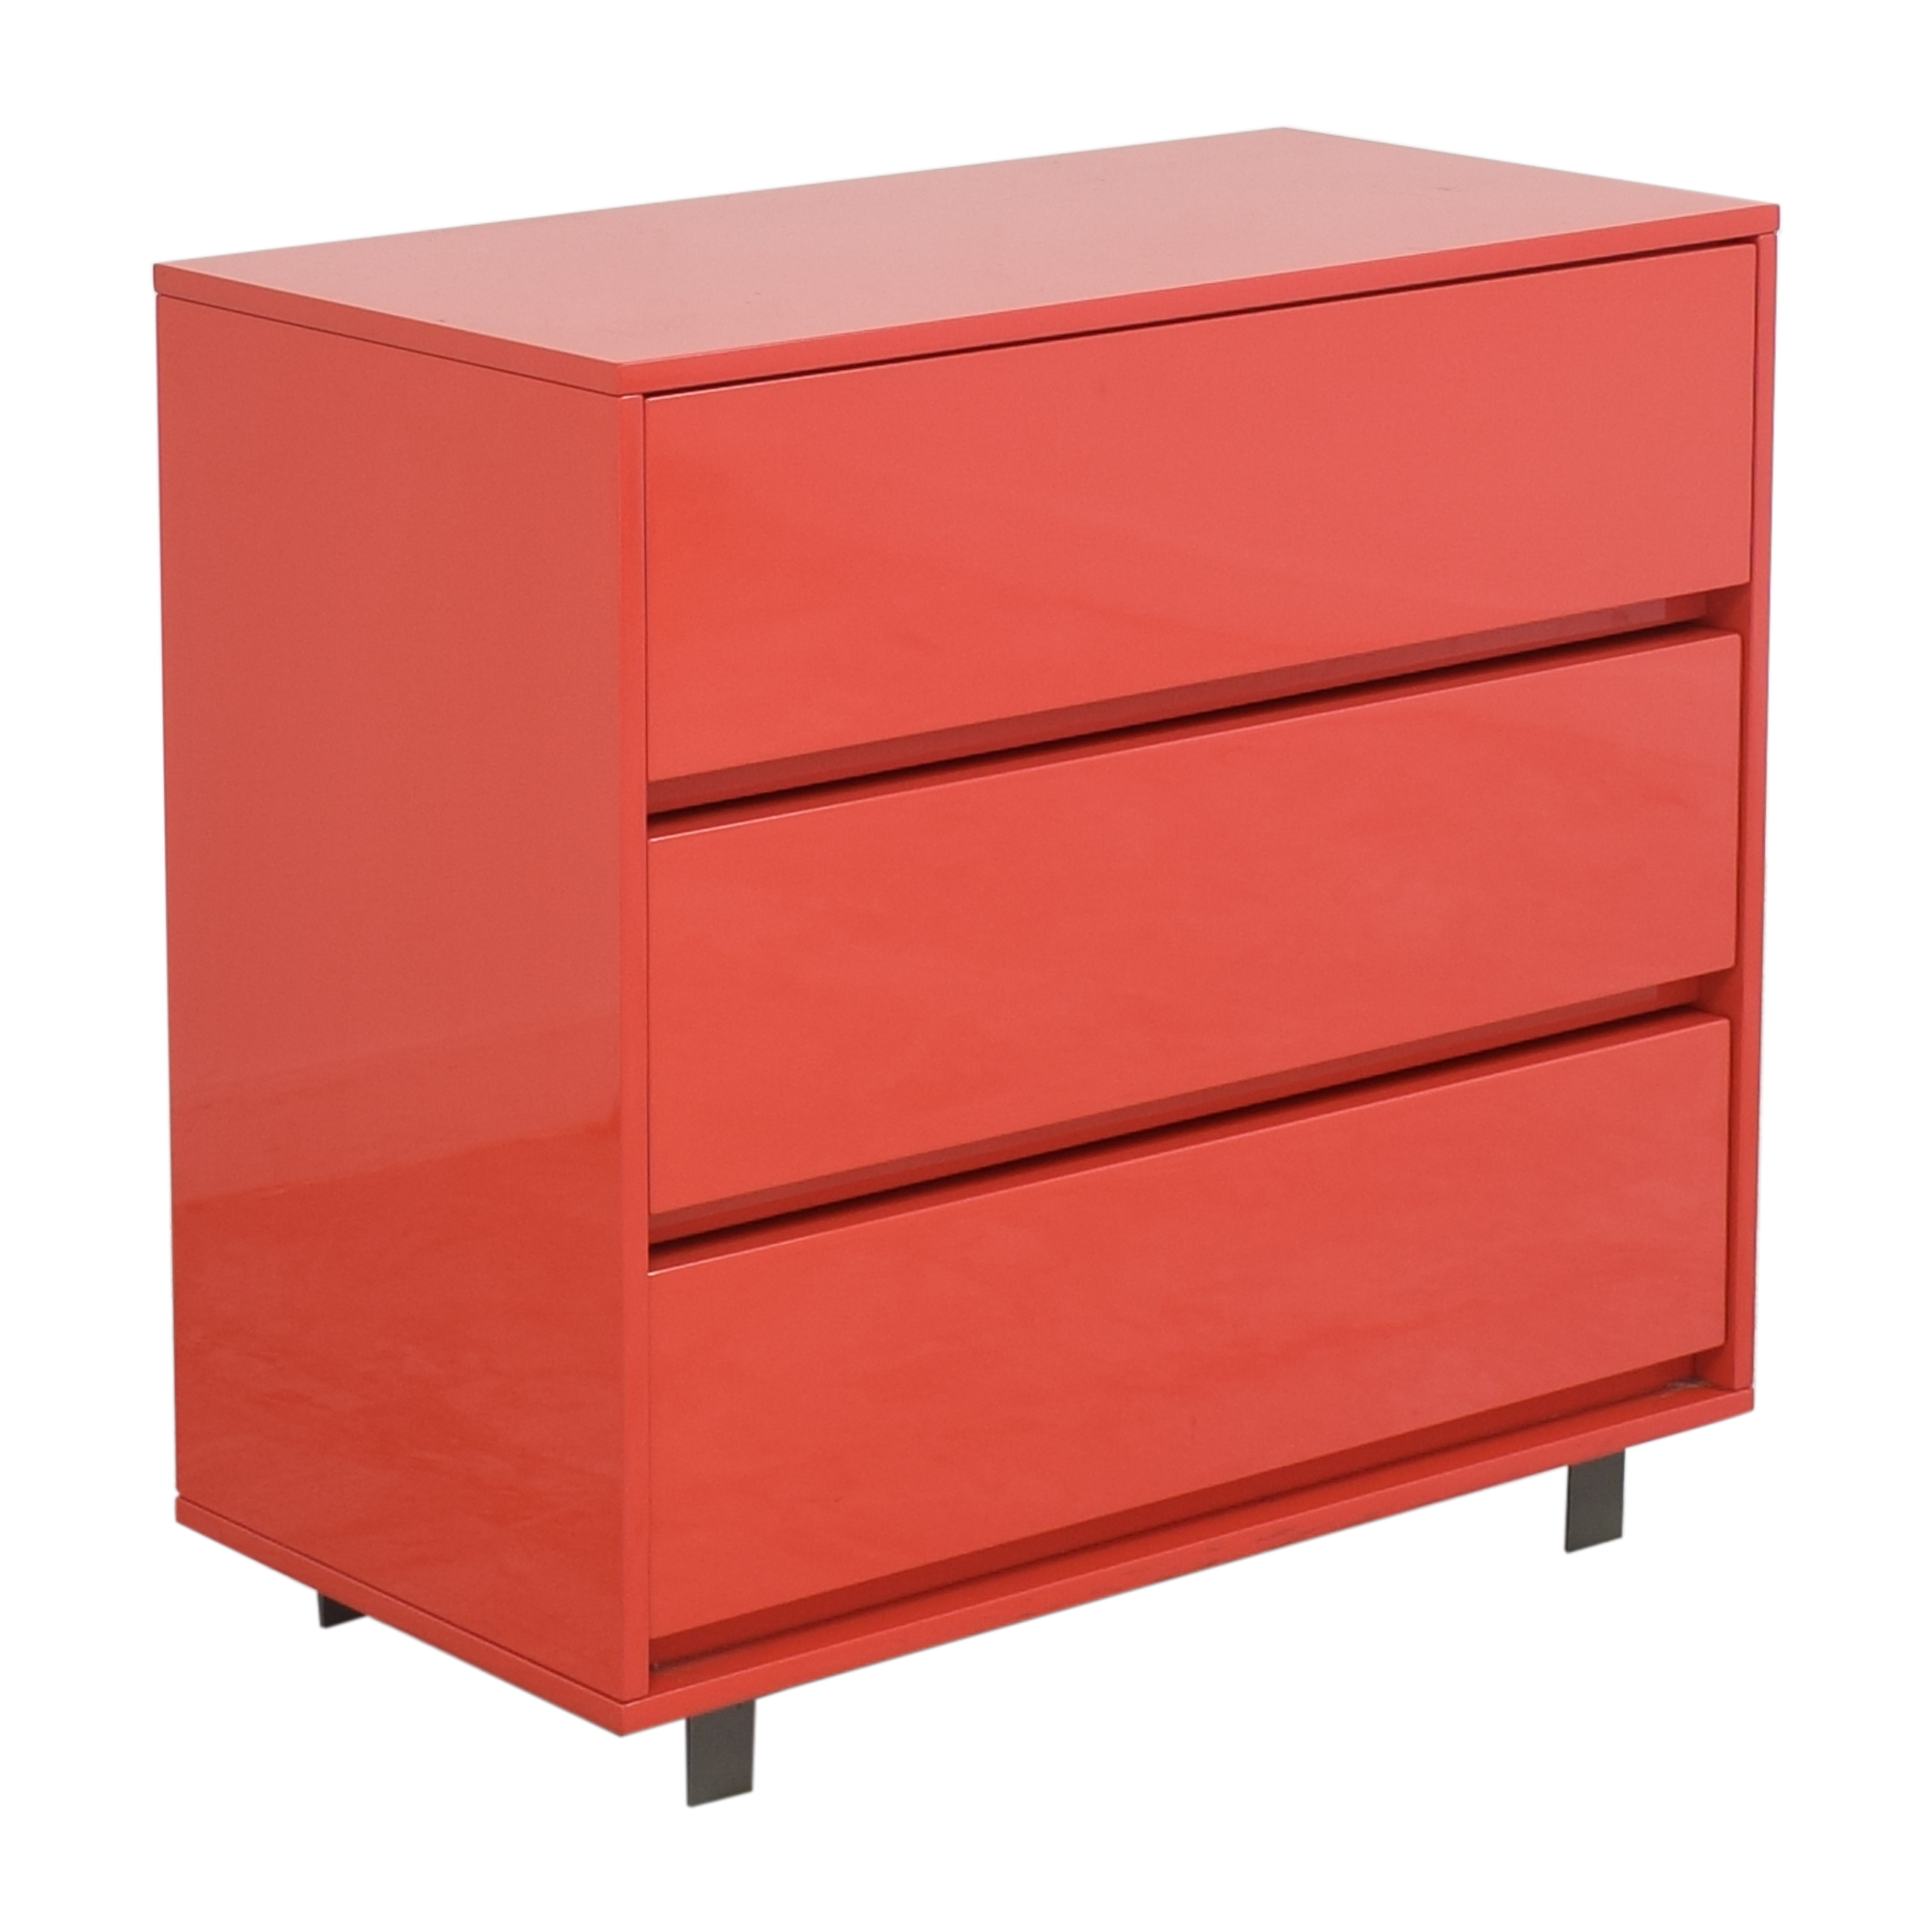 CB2 CB2 3-Drawer Dresser ma